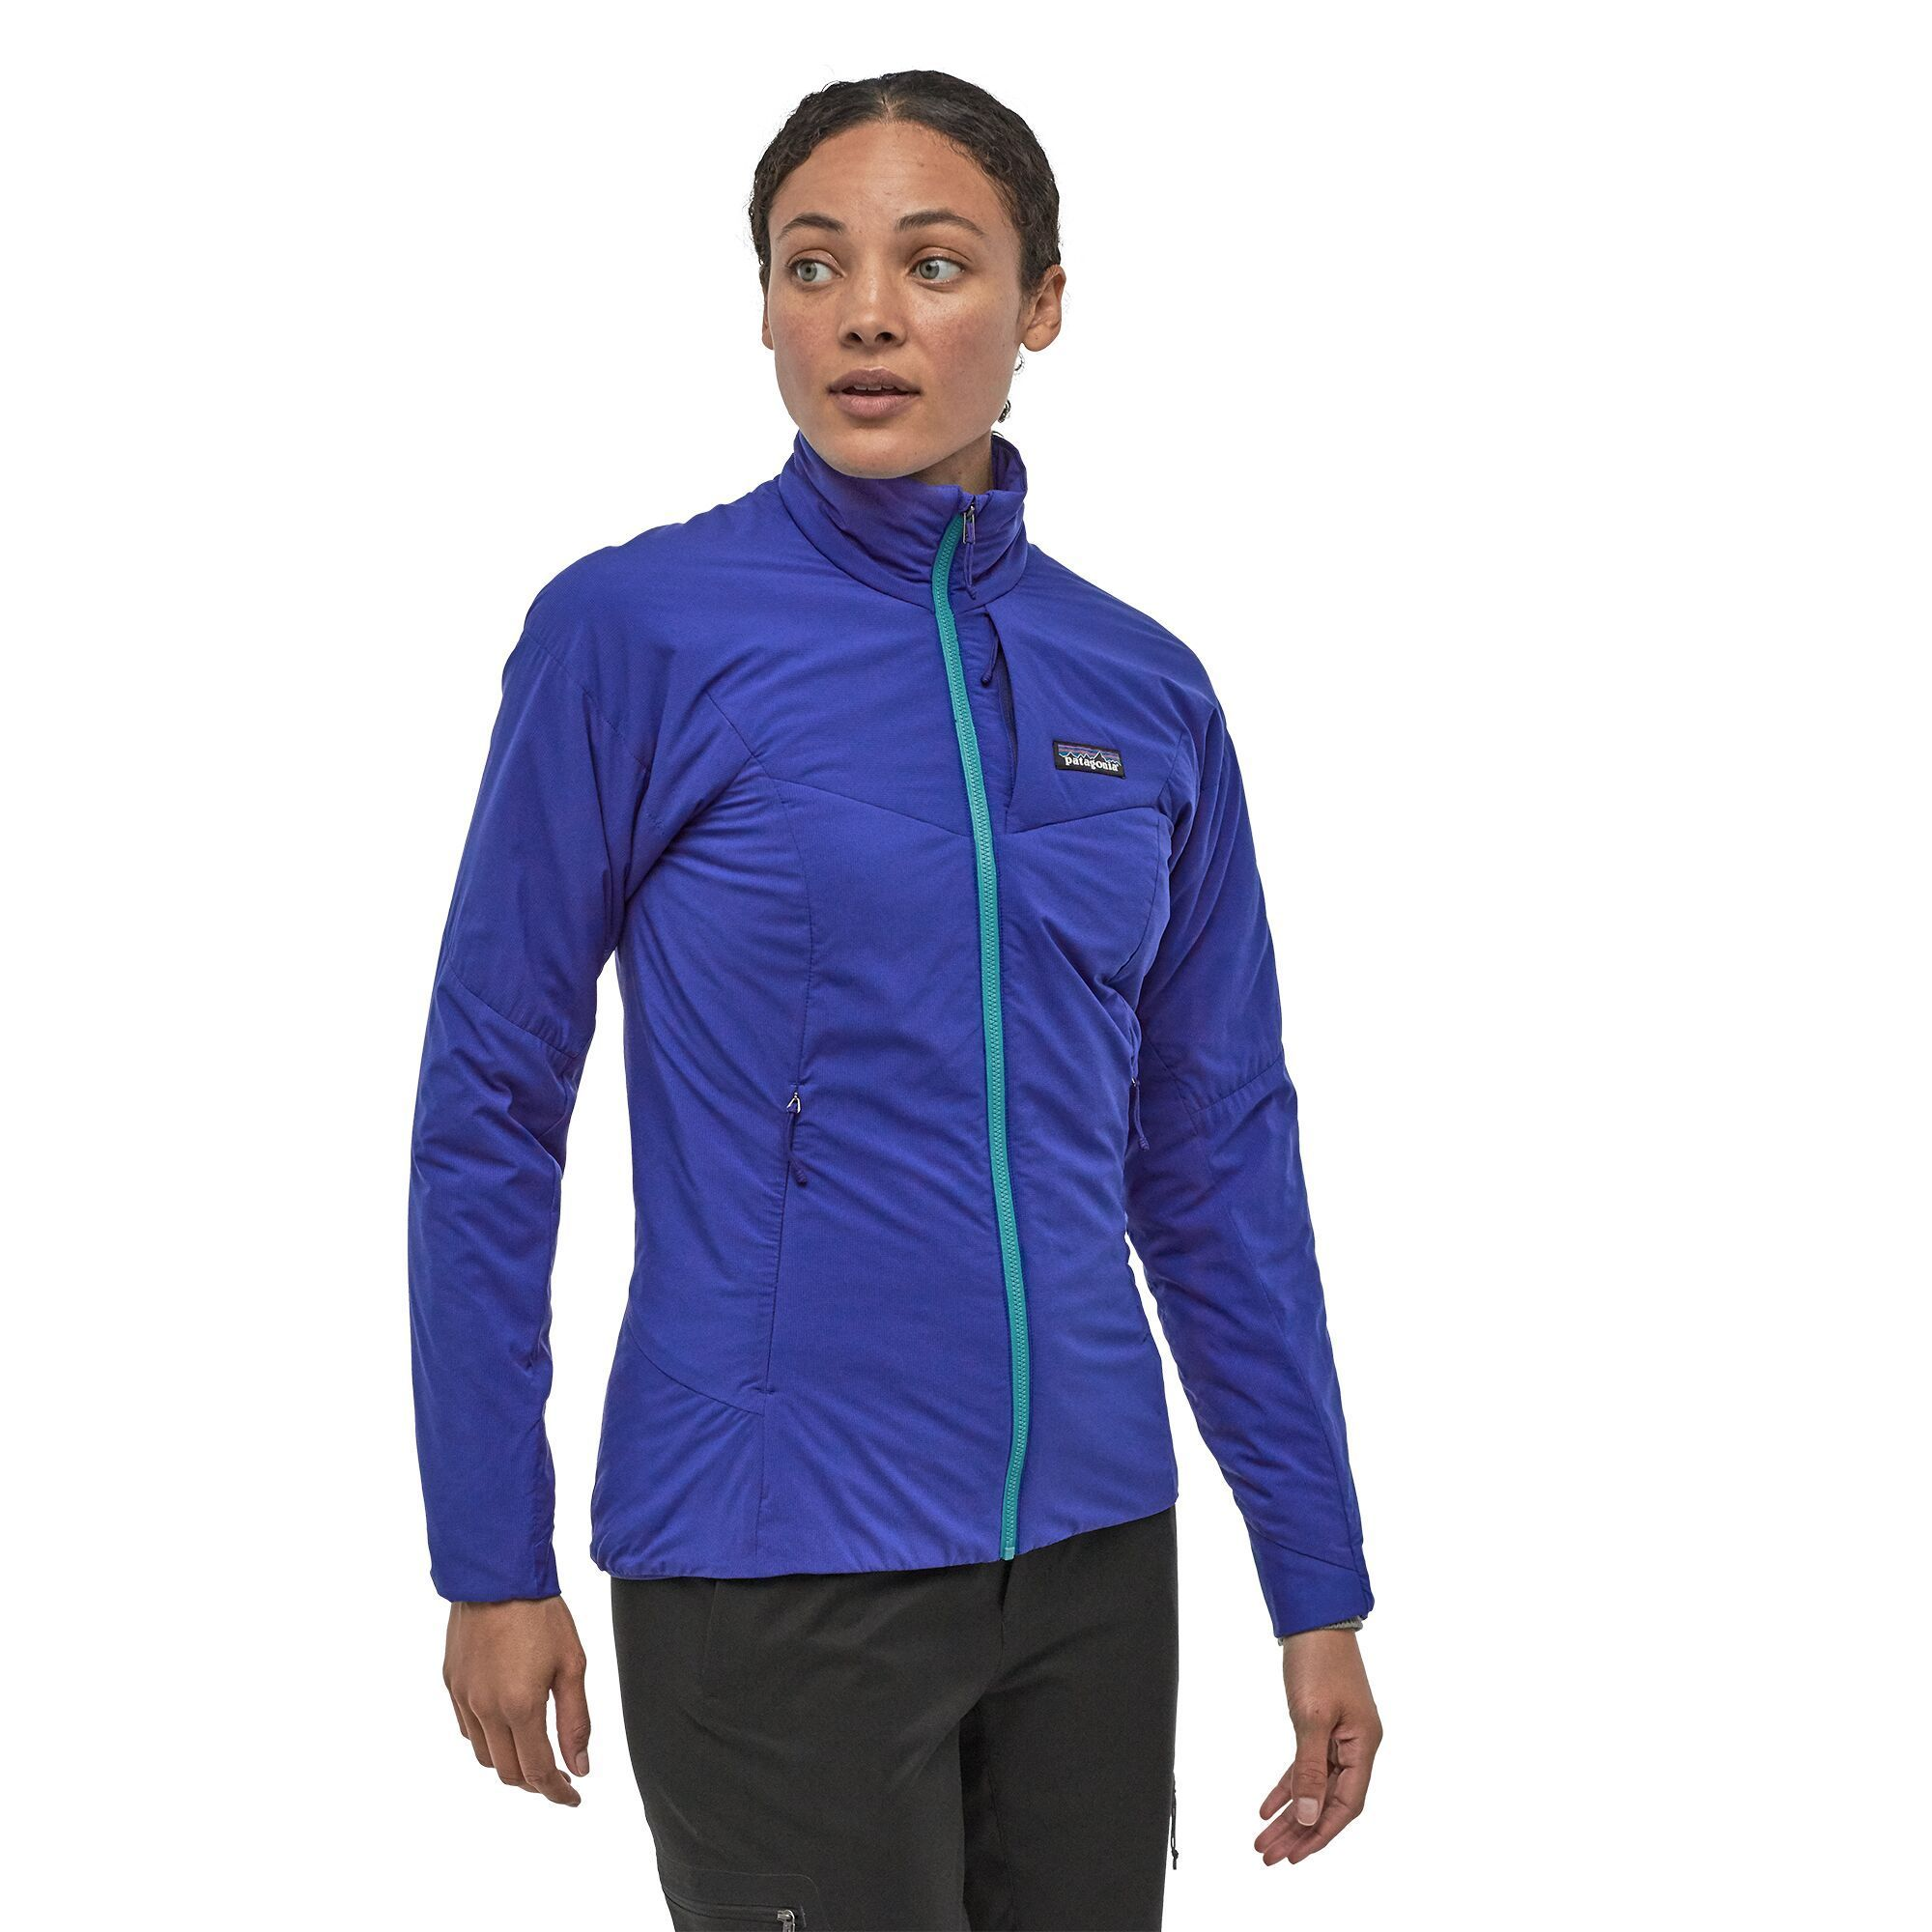 Patagonia - Women's Nano-Air® Jacket - Cobalt Blue - Recycled Polyester - Weekendbee - sustainable sportswear